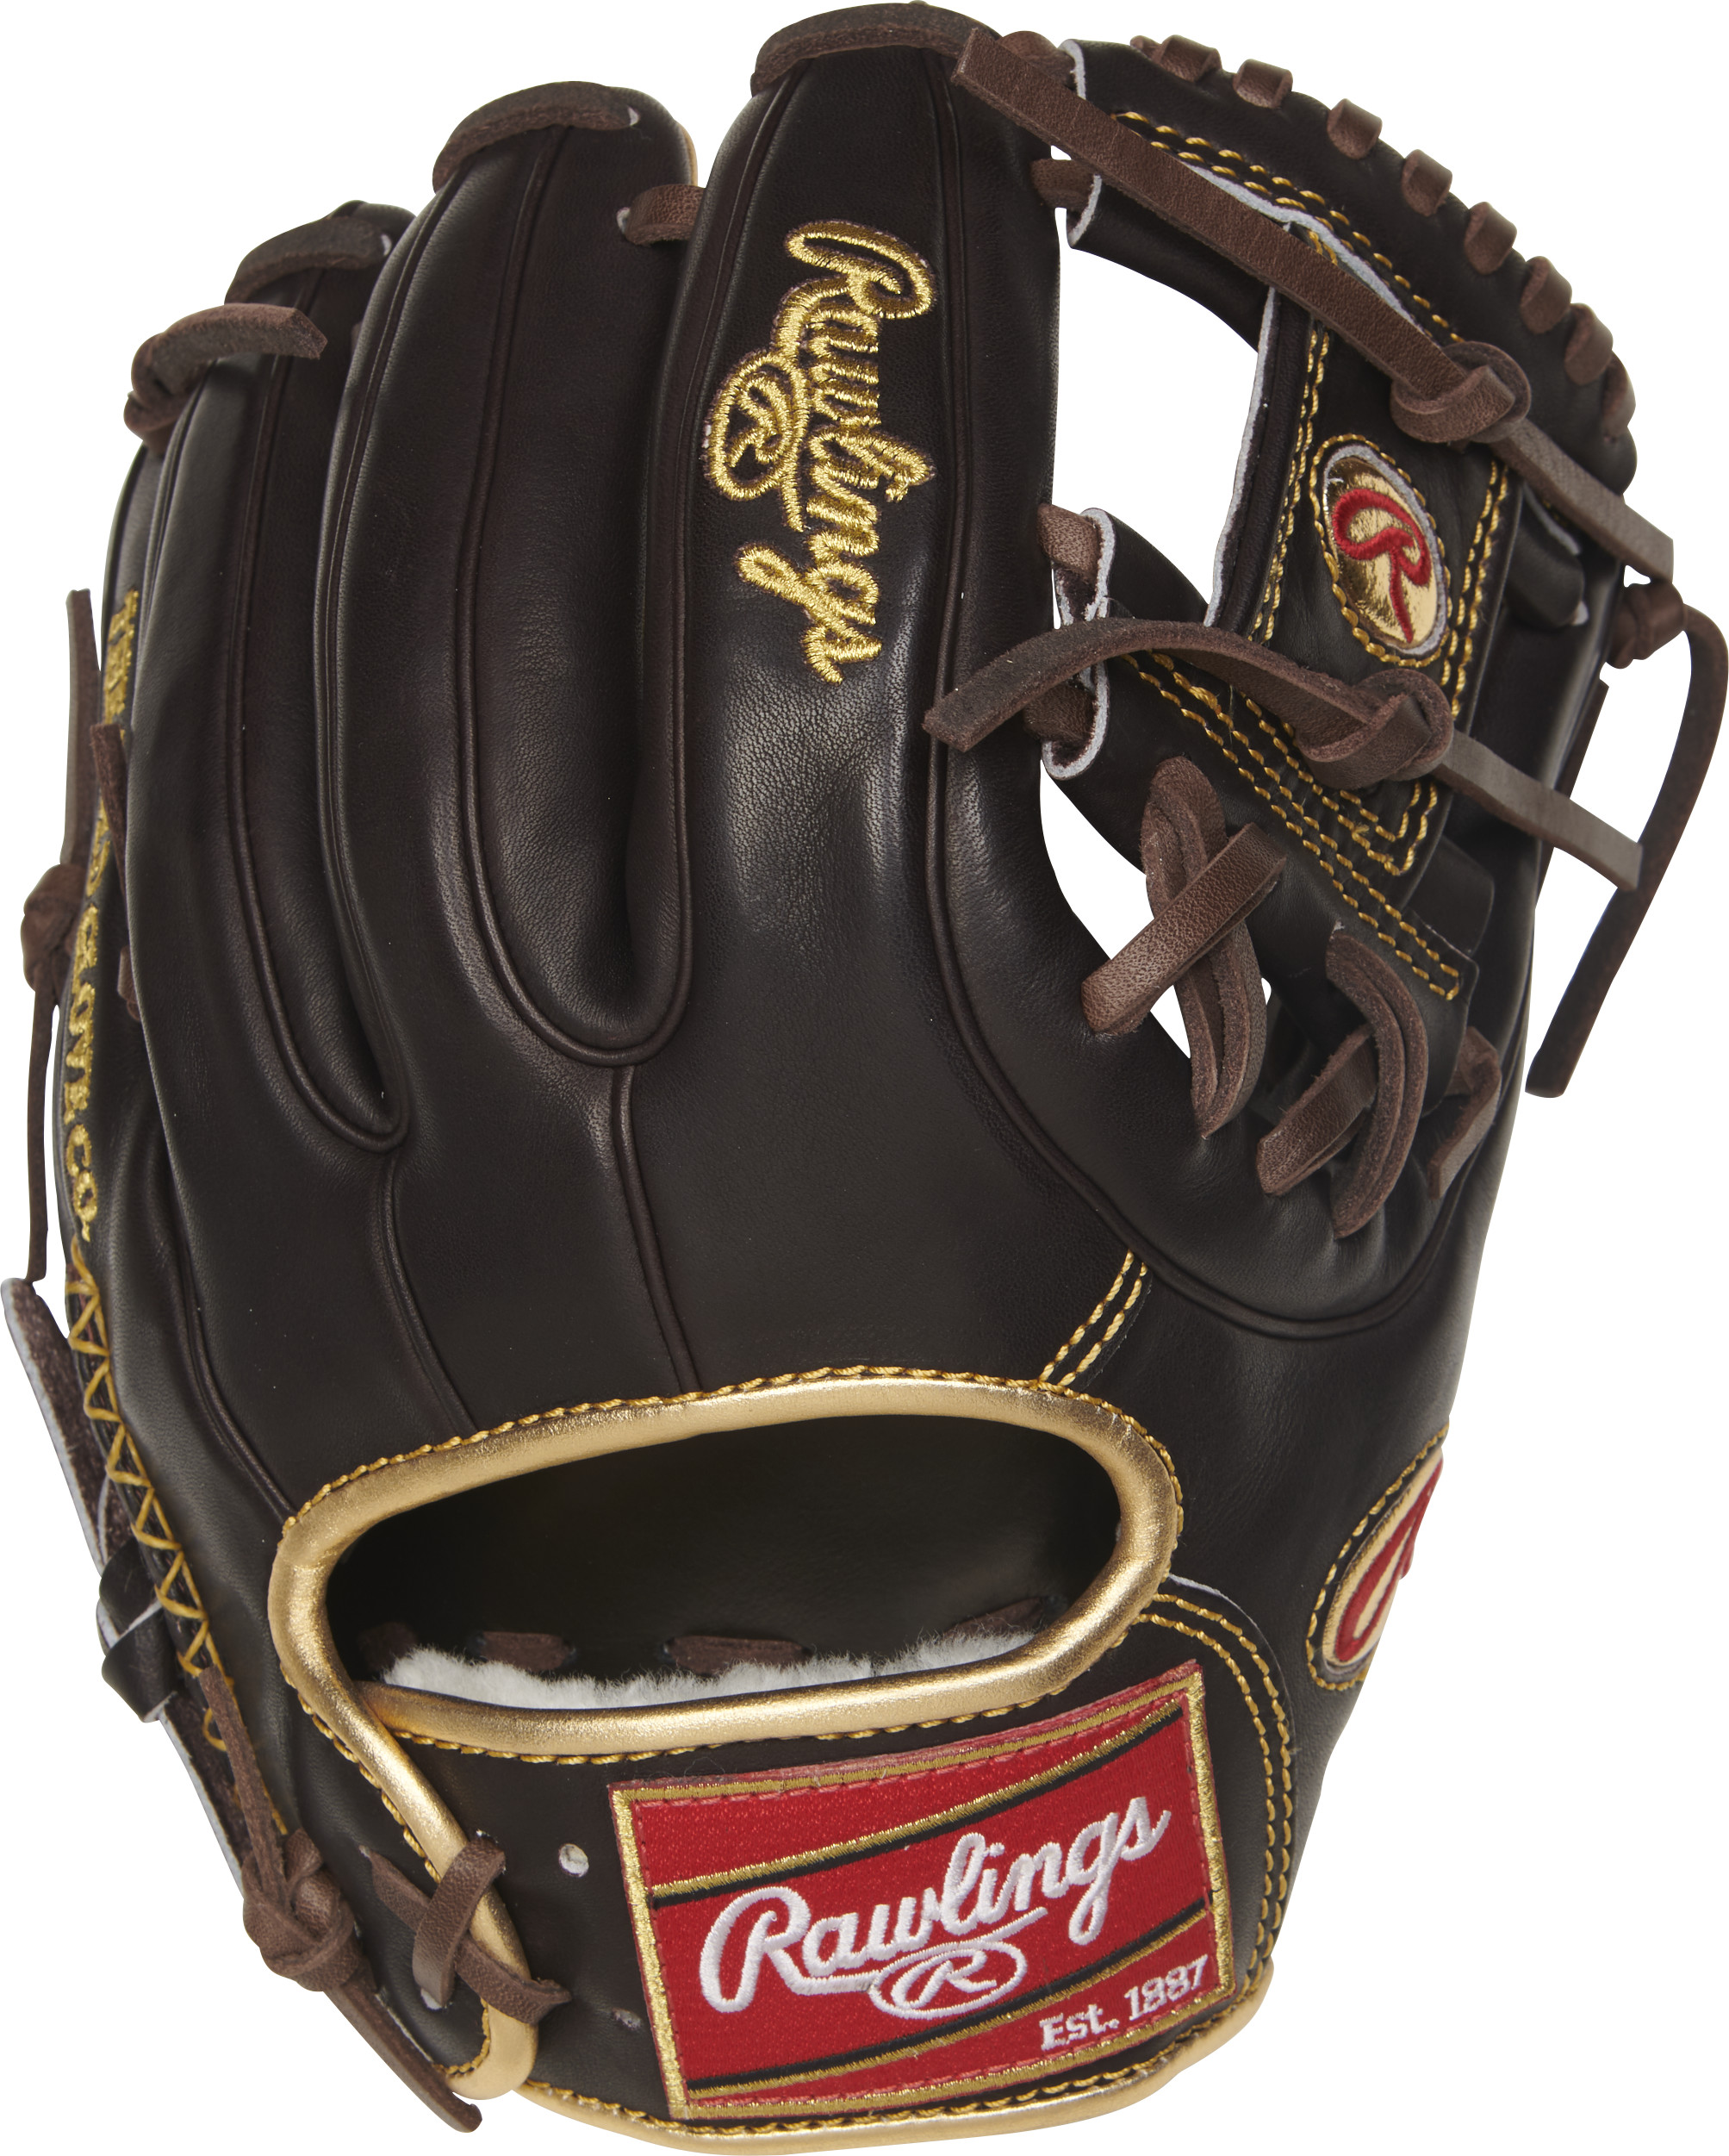 http://www.bestbatdeals.com/images/gloves/rawlings/RGG314-2MO-2.jpg